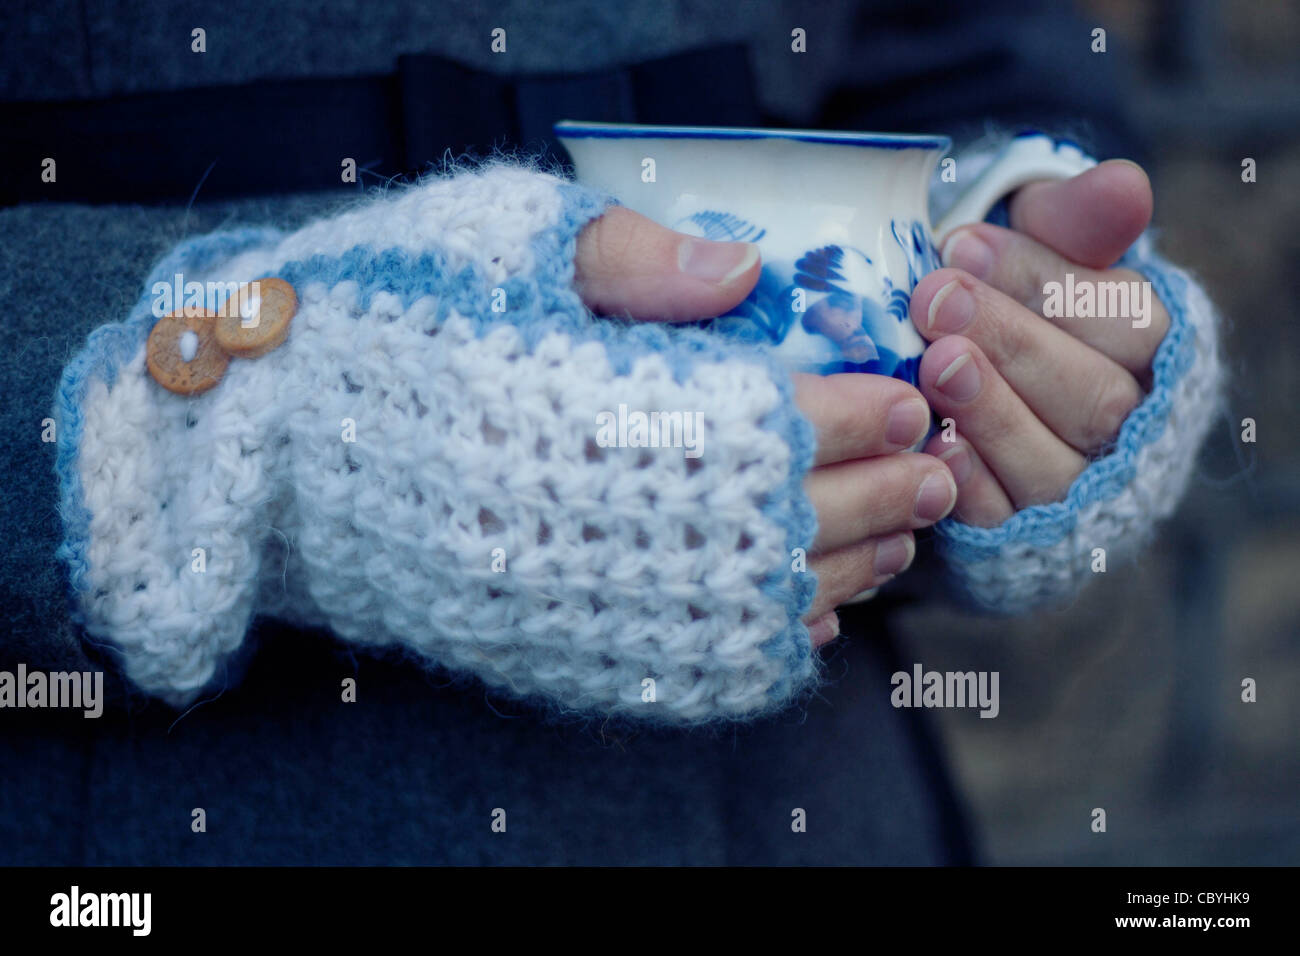 Crocheted mittens with wooden buttons and a white/blue cup - Stock Image